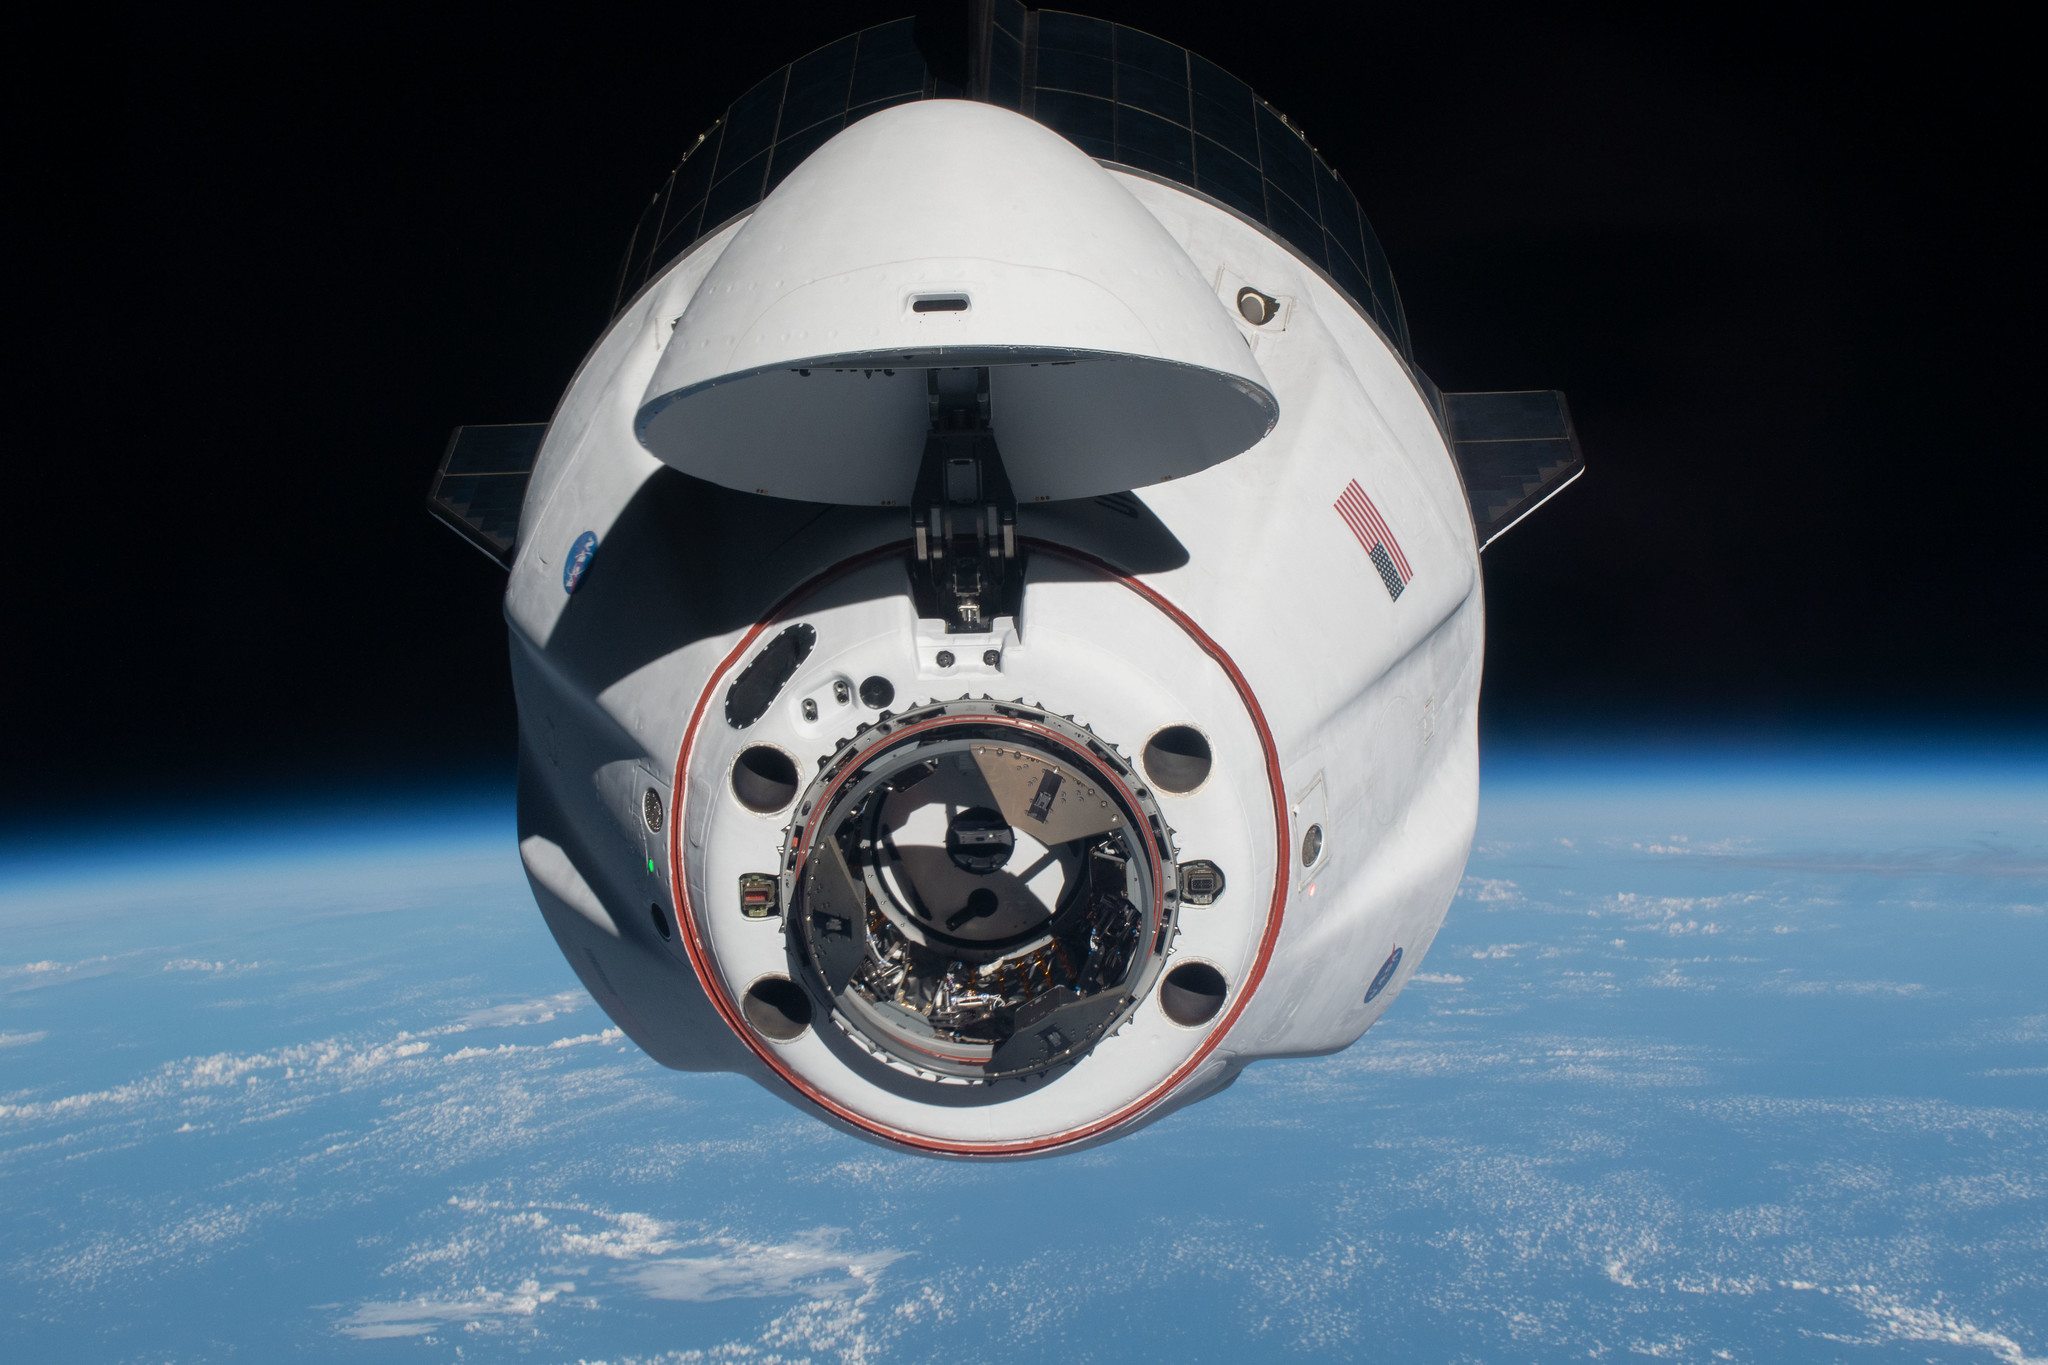 The SpaceX Crew Dragon Endeavour approaches the International Space Station